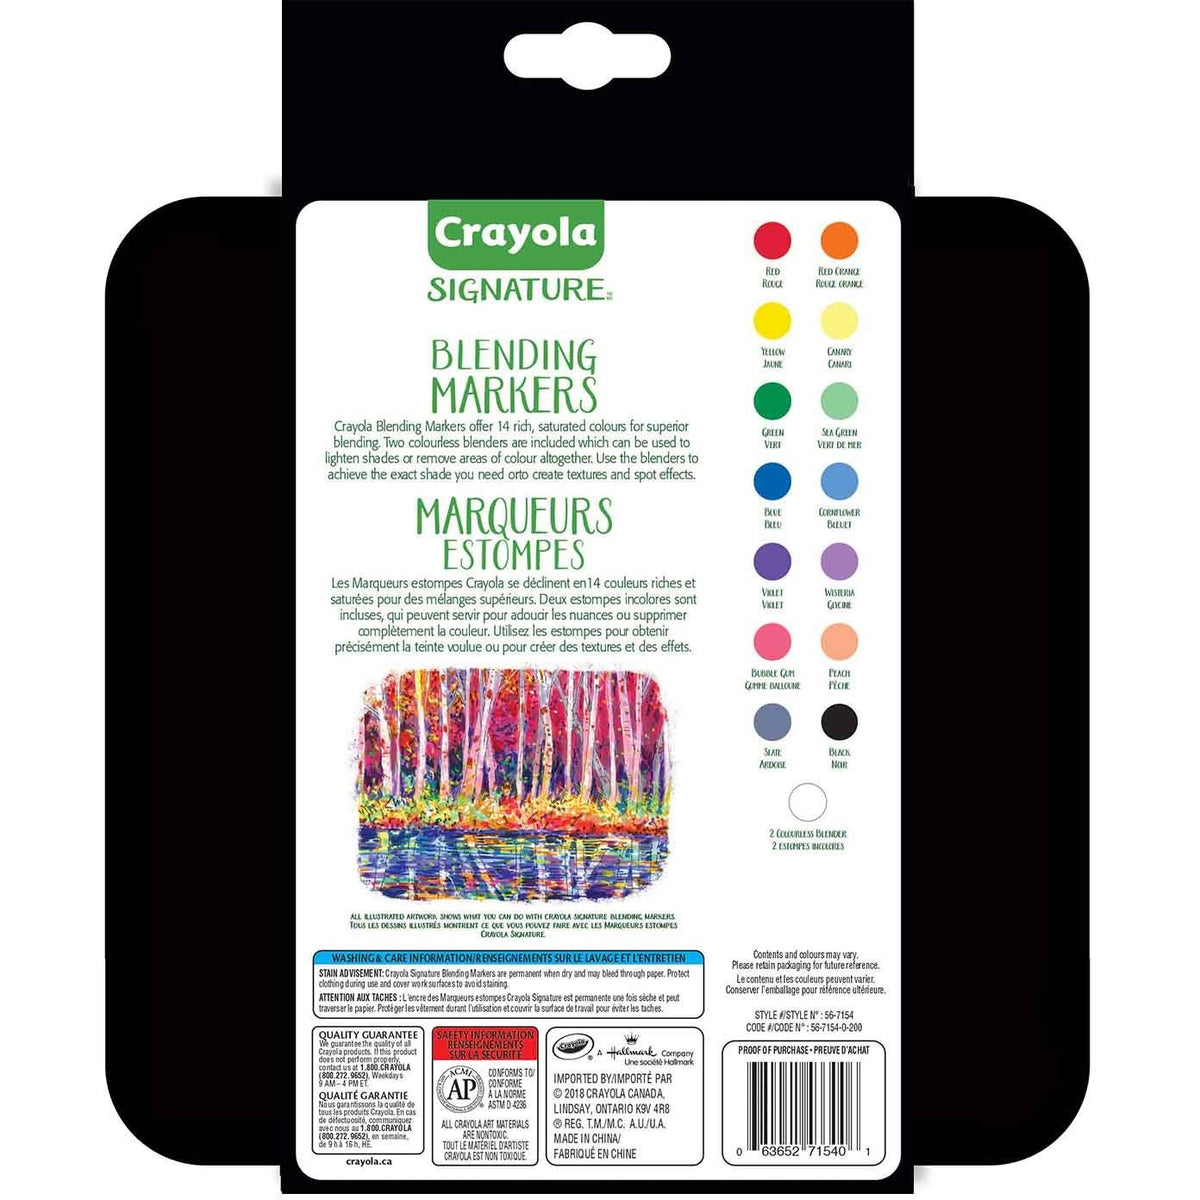 Crayola Signature Blending Markers in a Tin